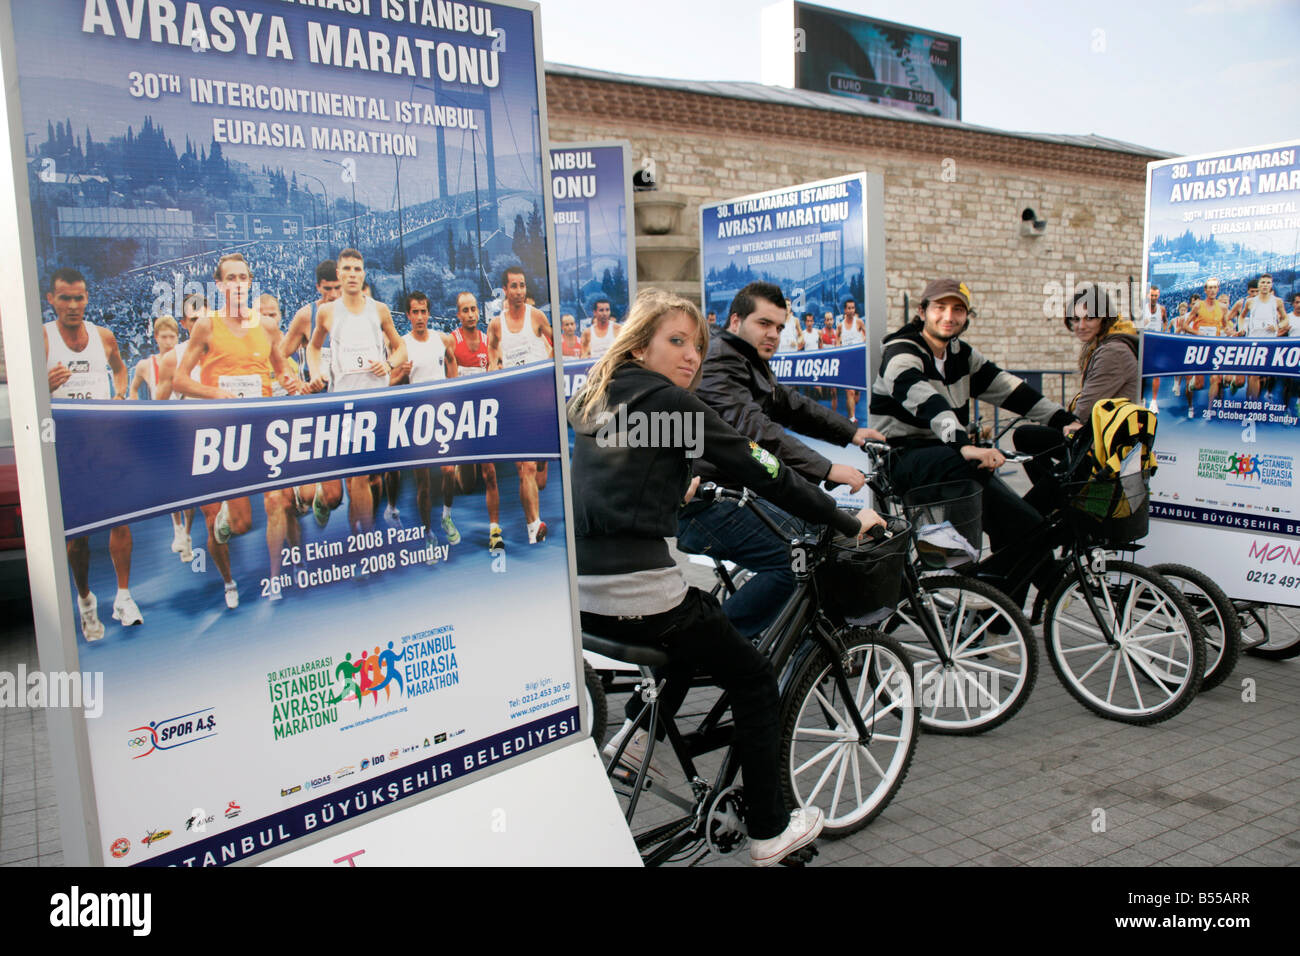 Advertising the 30th Intercontinental Istanbul Eurasia Marathon in Taksim, Istanbul, Turkey, 2008 - Stock Image